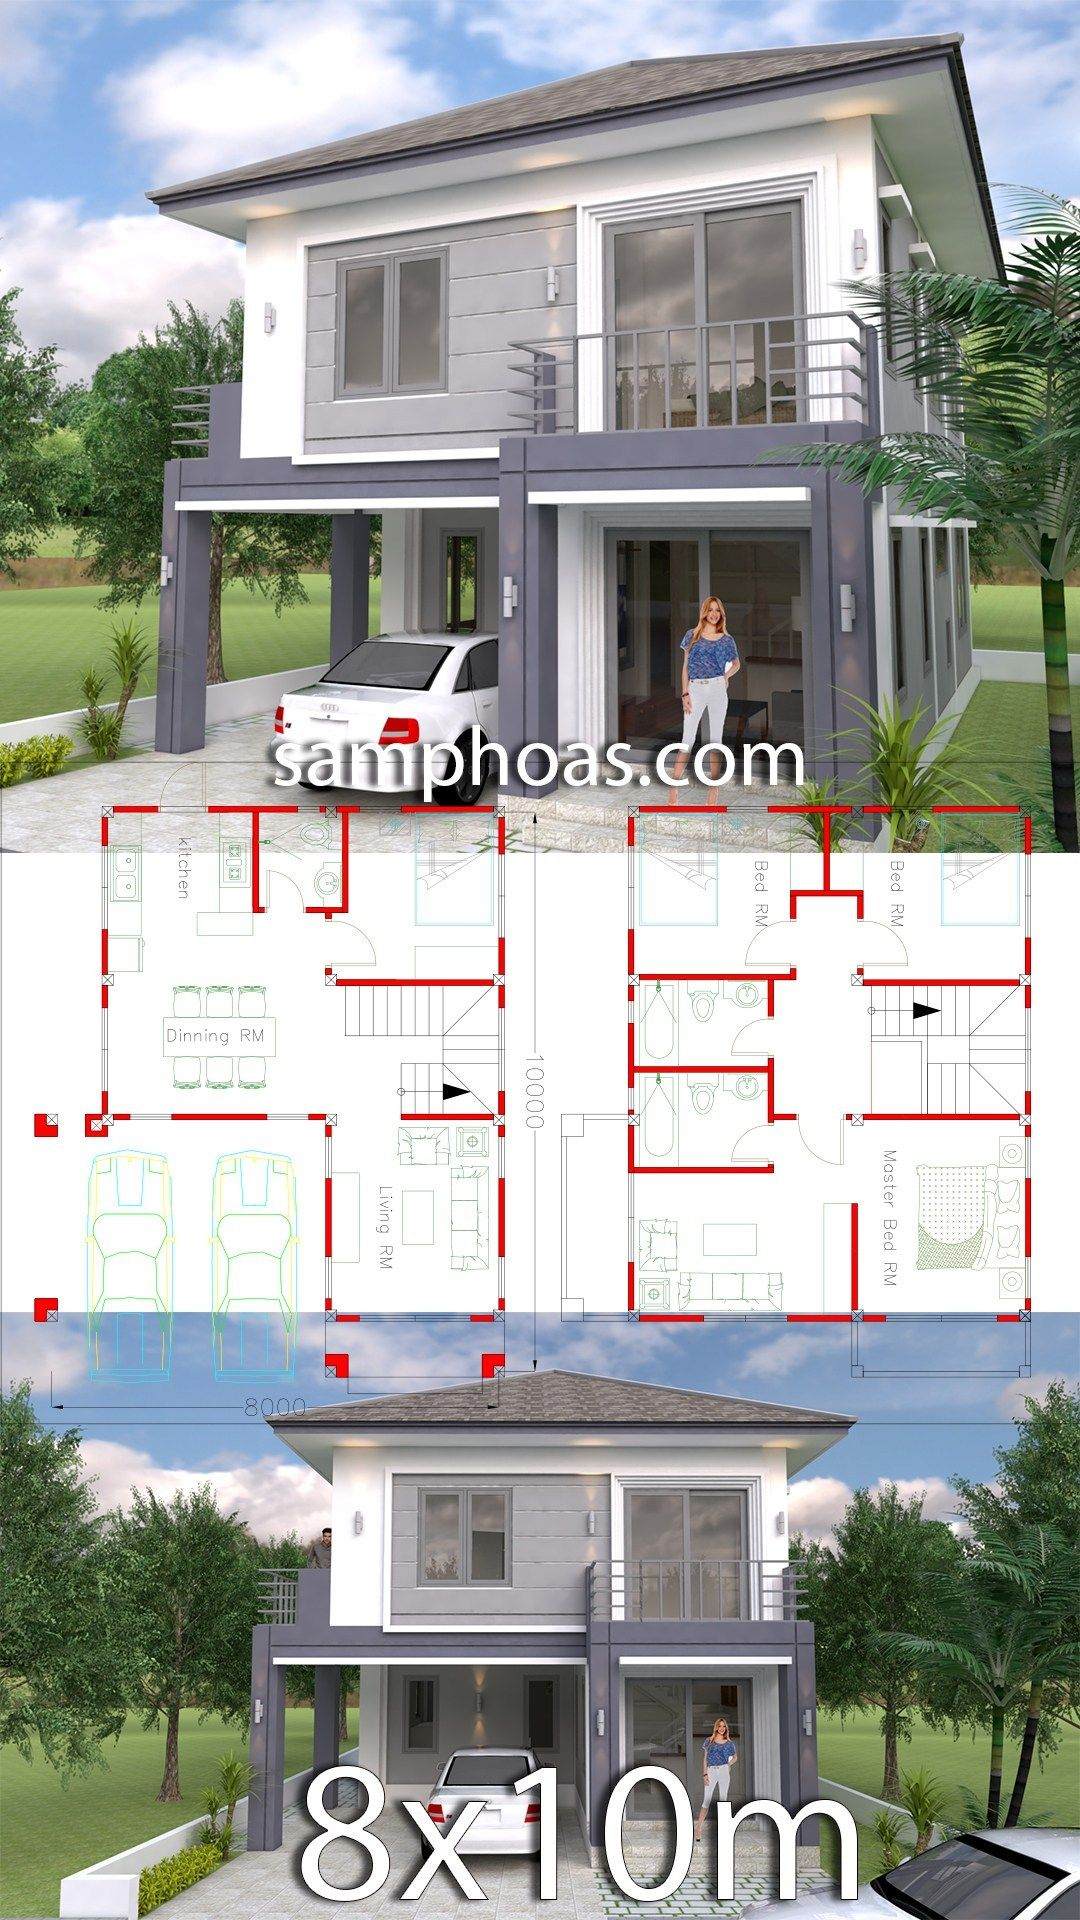 One Story House Plans 8m X 10m Home Plans Design Free Home Plans And Apartments For Sale Small House Plans Free House Plans Modern House Plans